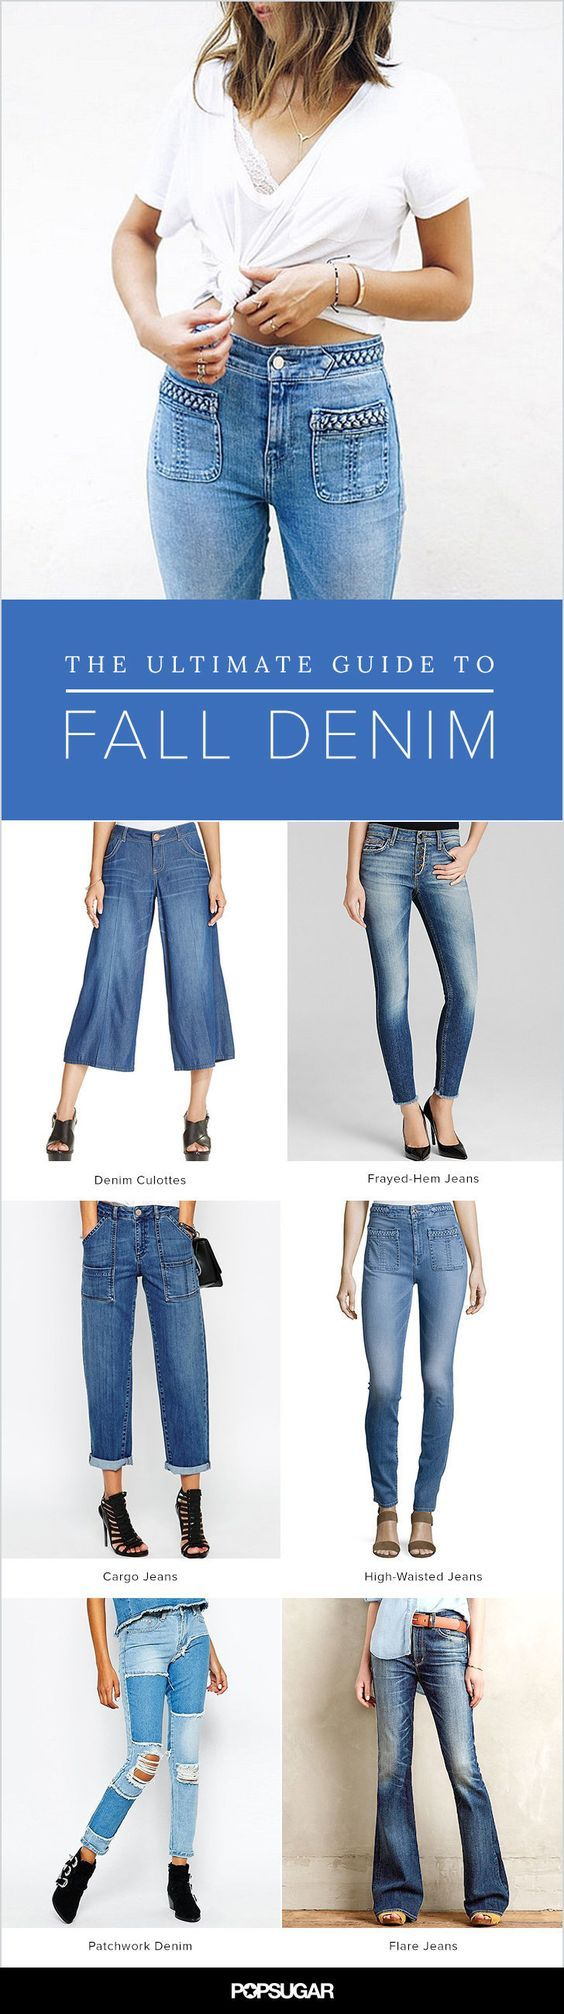 The 7 denim trends you need to follow.